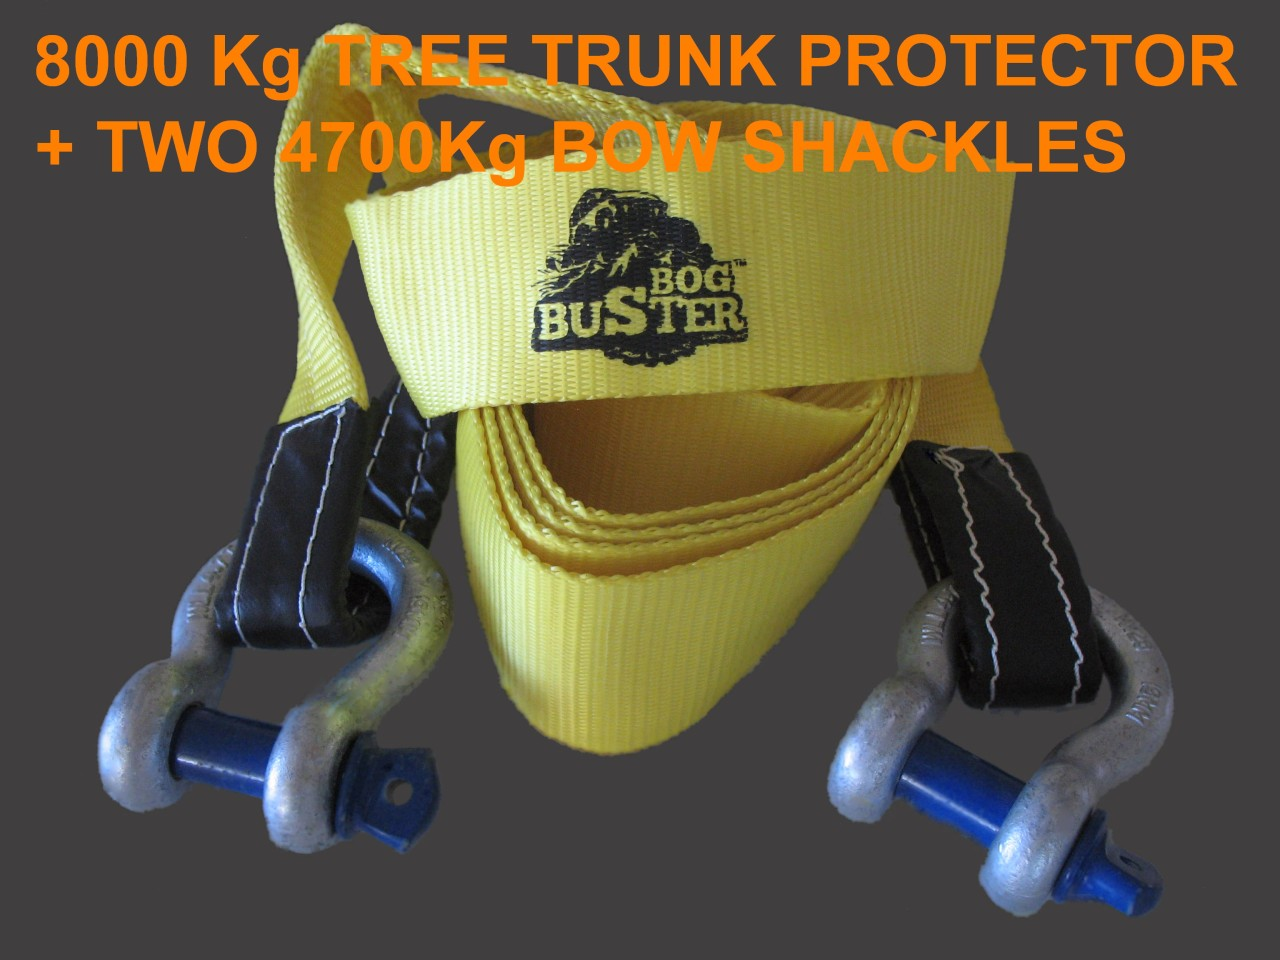 2-X-4-7-T-BOW-SHACKLES-AND-8-TONNE-TREE-TRUNK-PROTECTOR-TOW-STRAP-RECOVERY-4X4